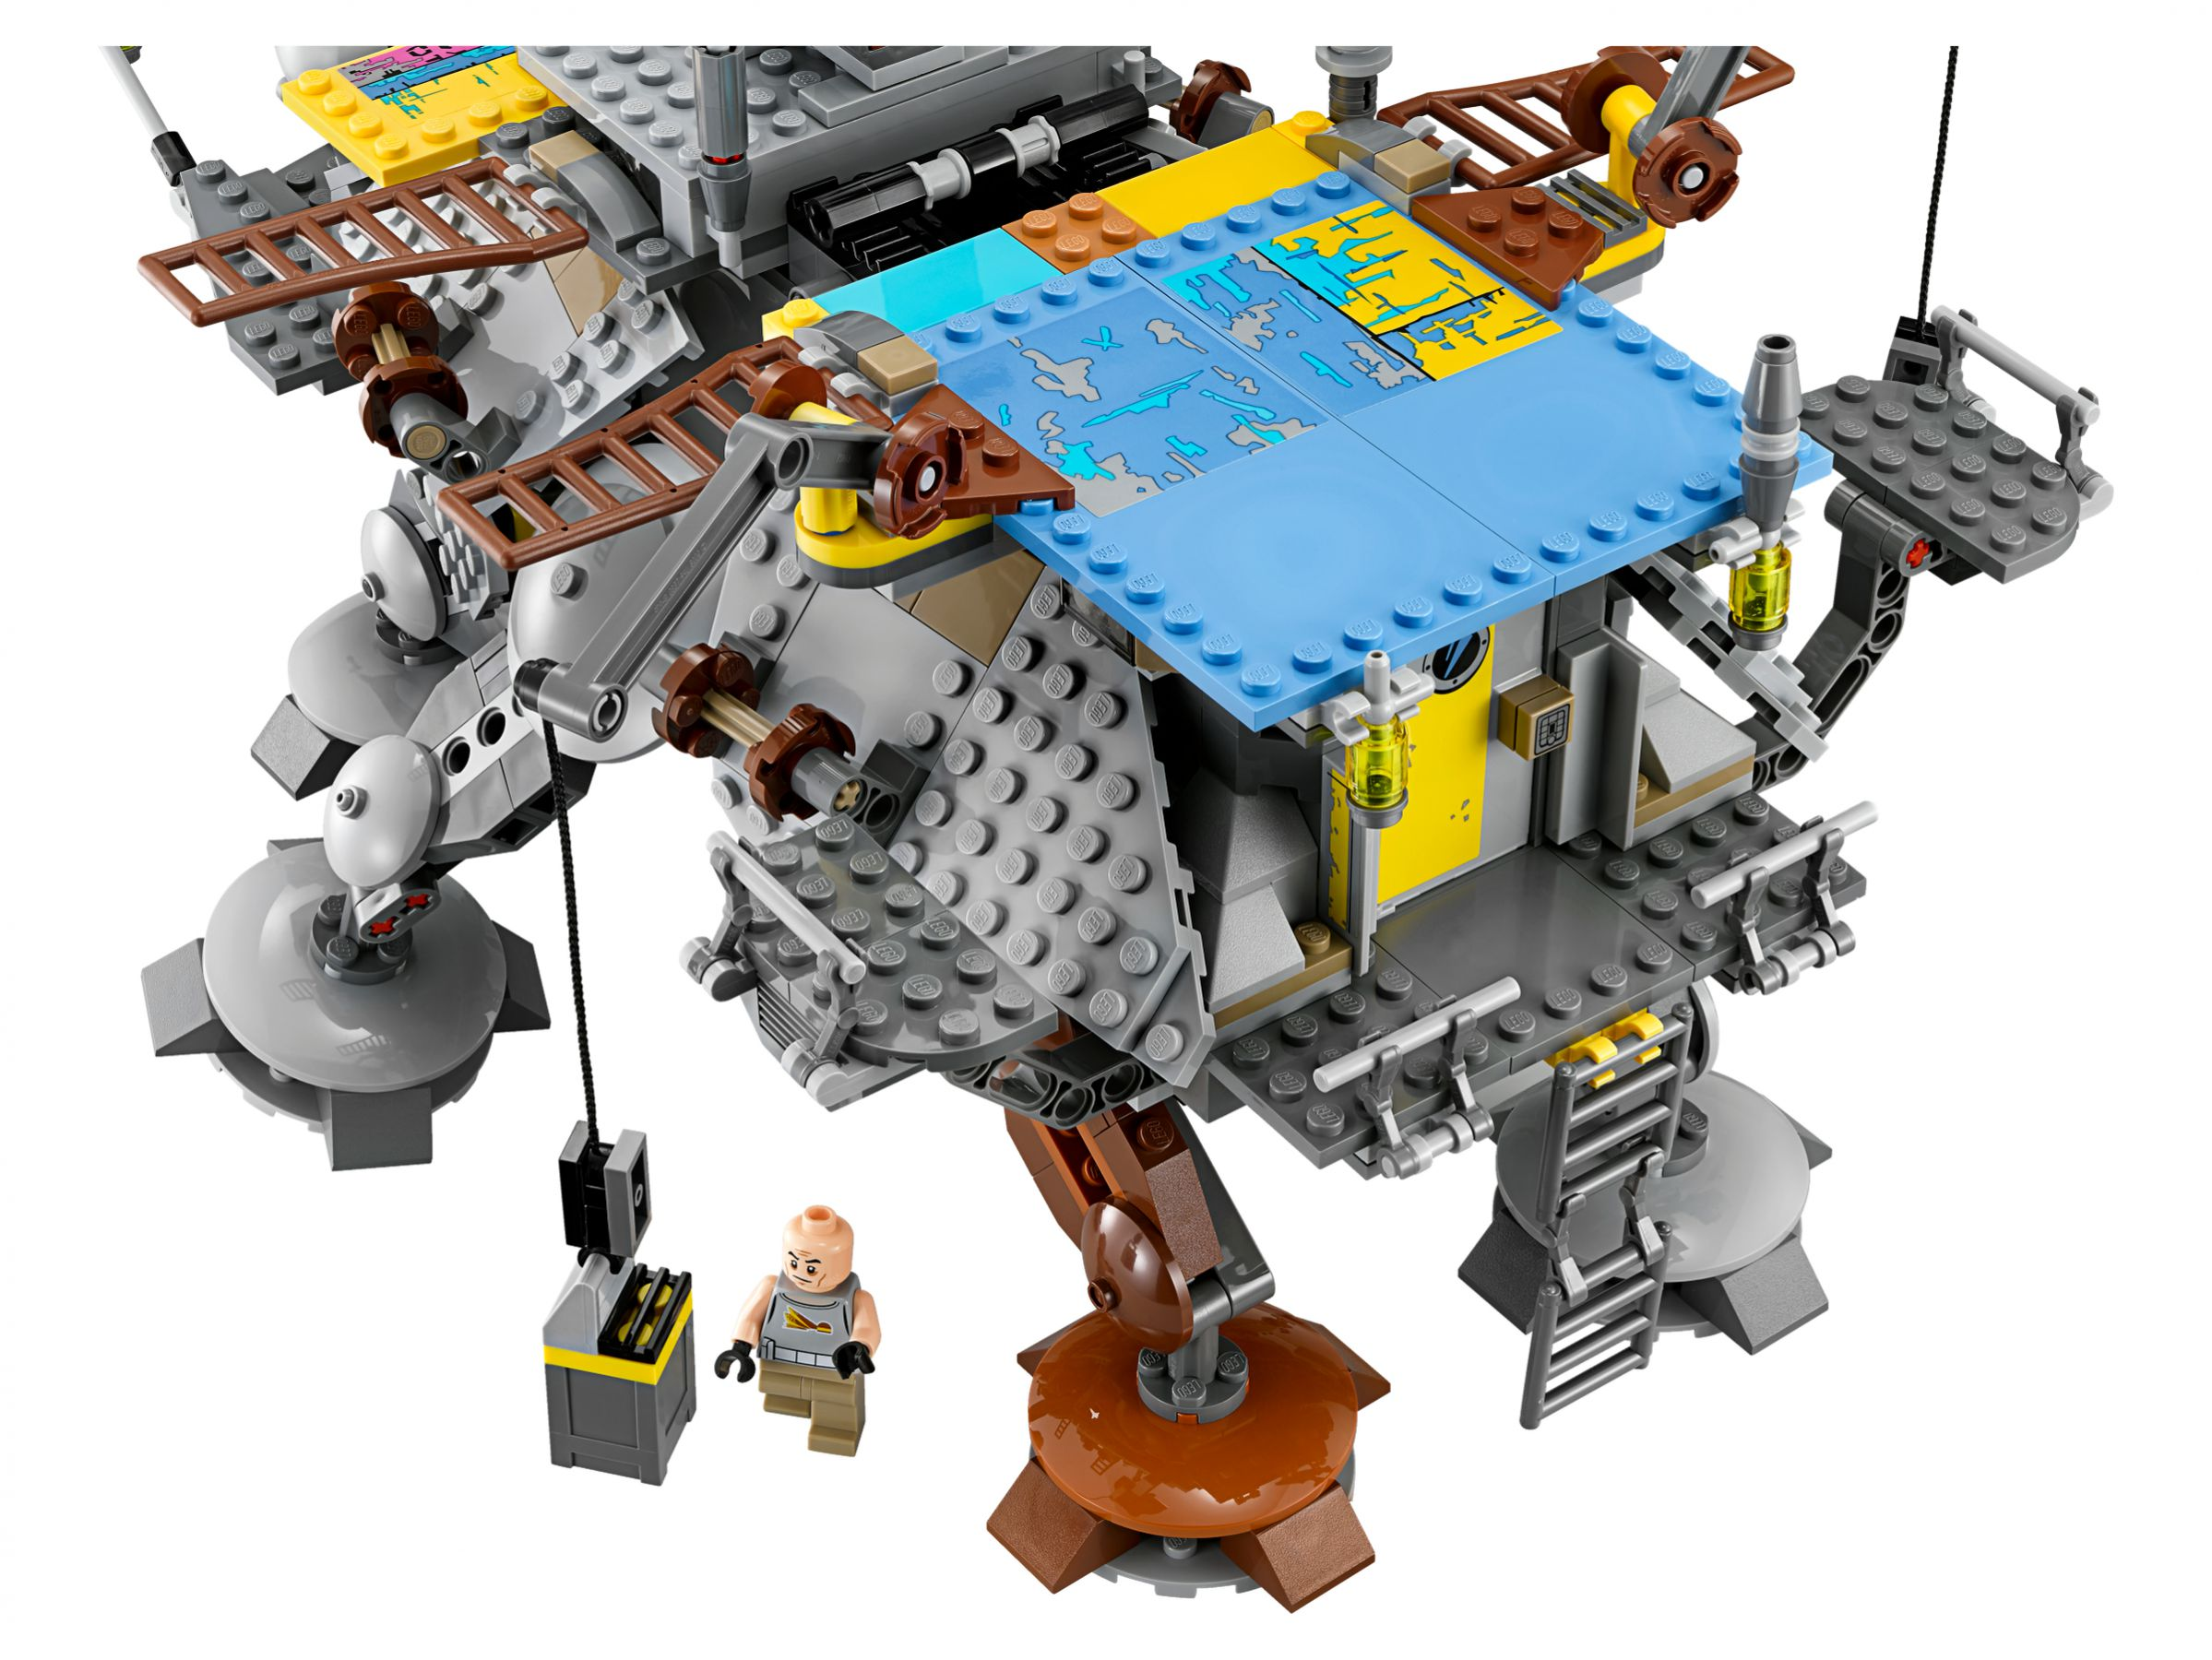 LEGO Star Wars 75157 Captain Rex's AT-TE™ LEGO_75157_alt6.jpg